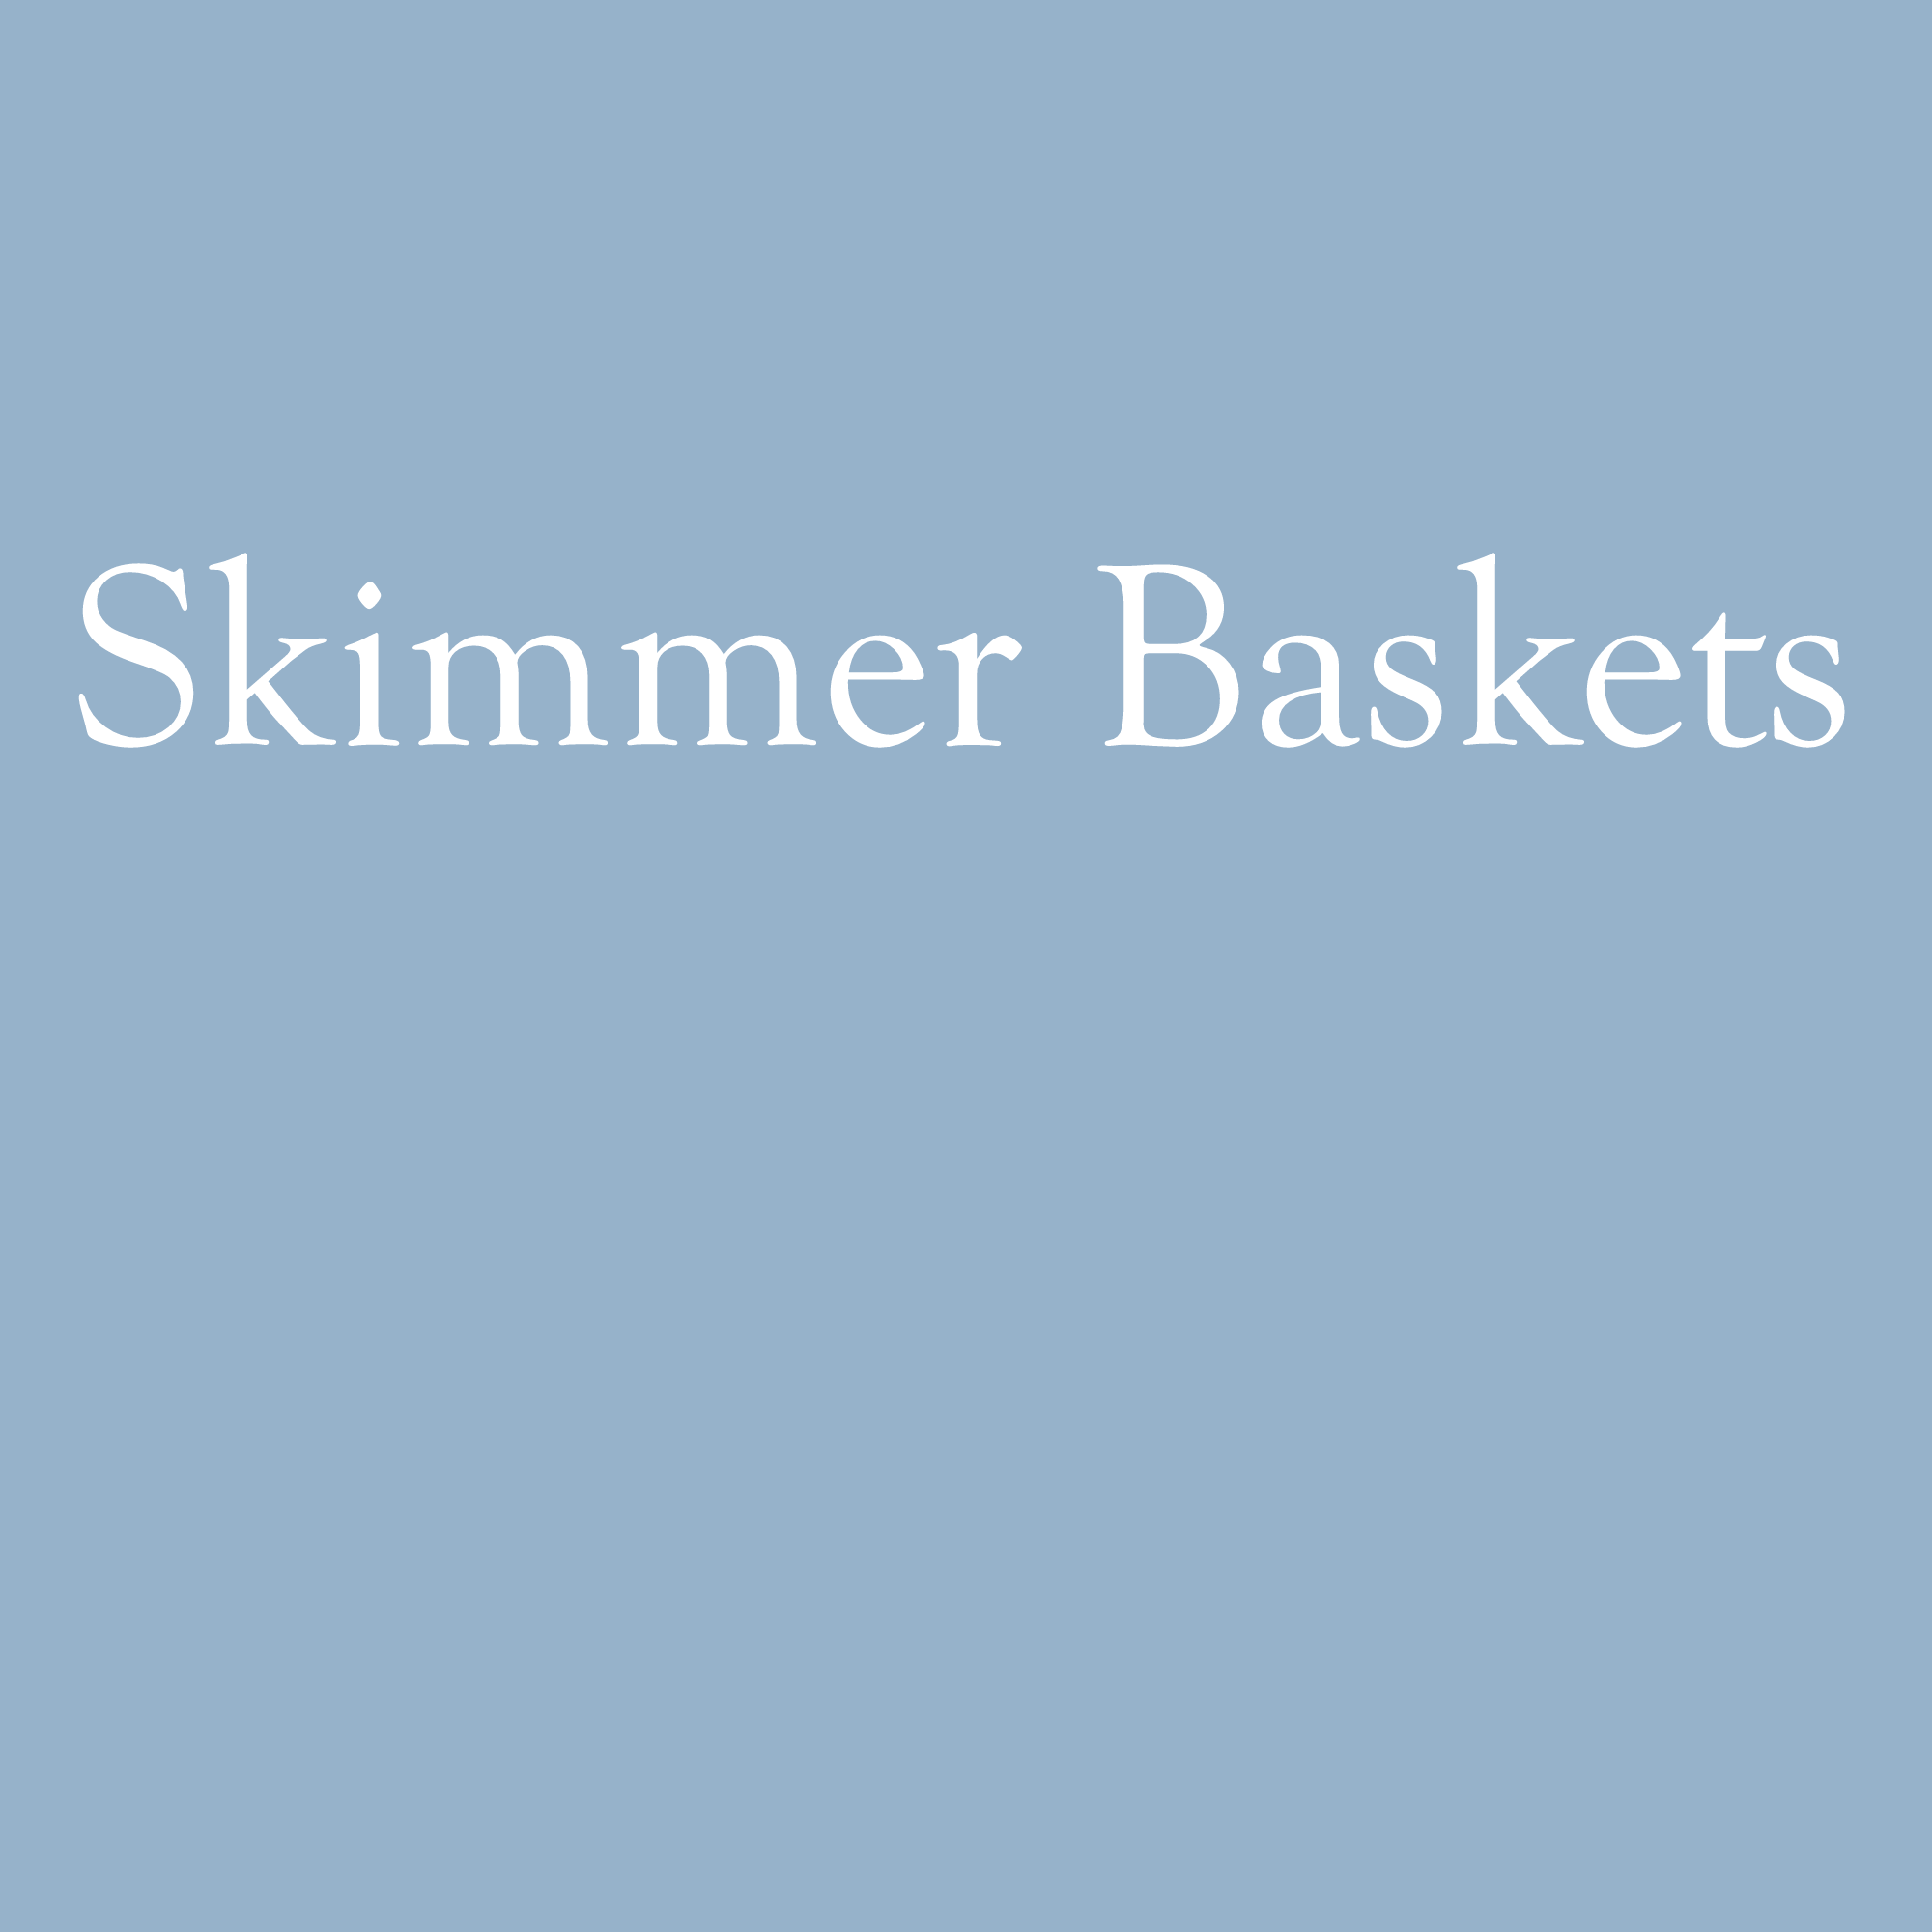 Skimmer Baskets